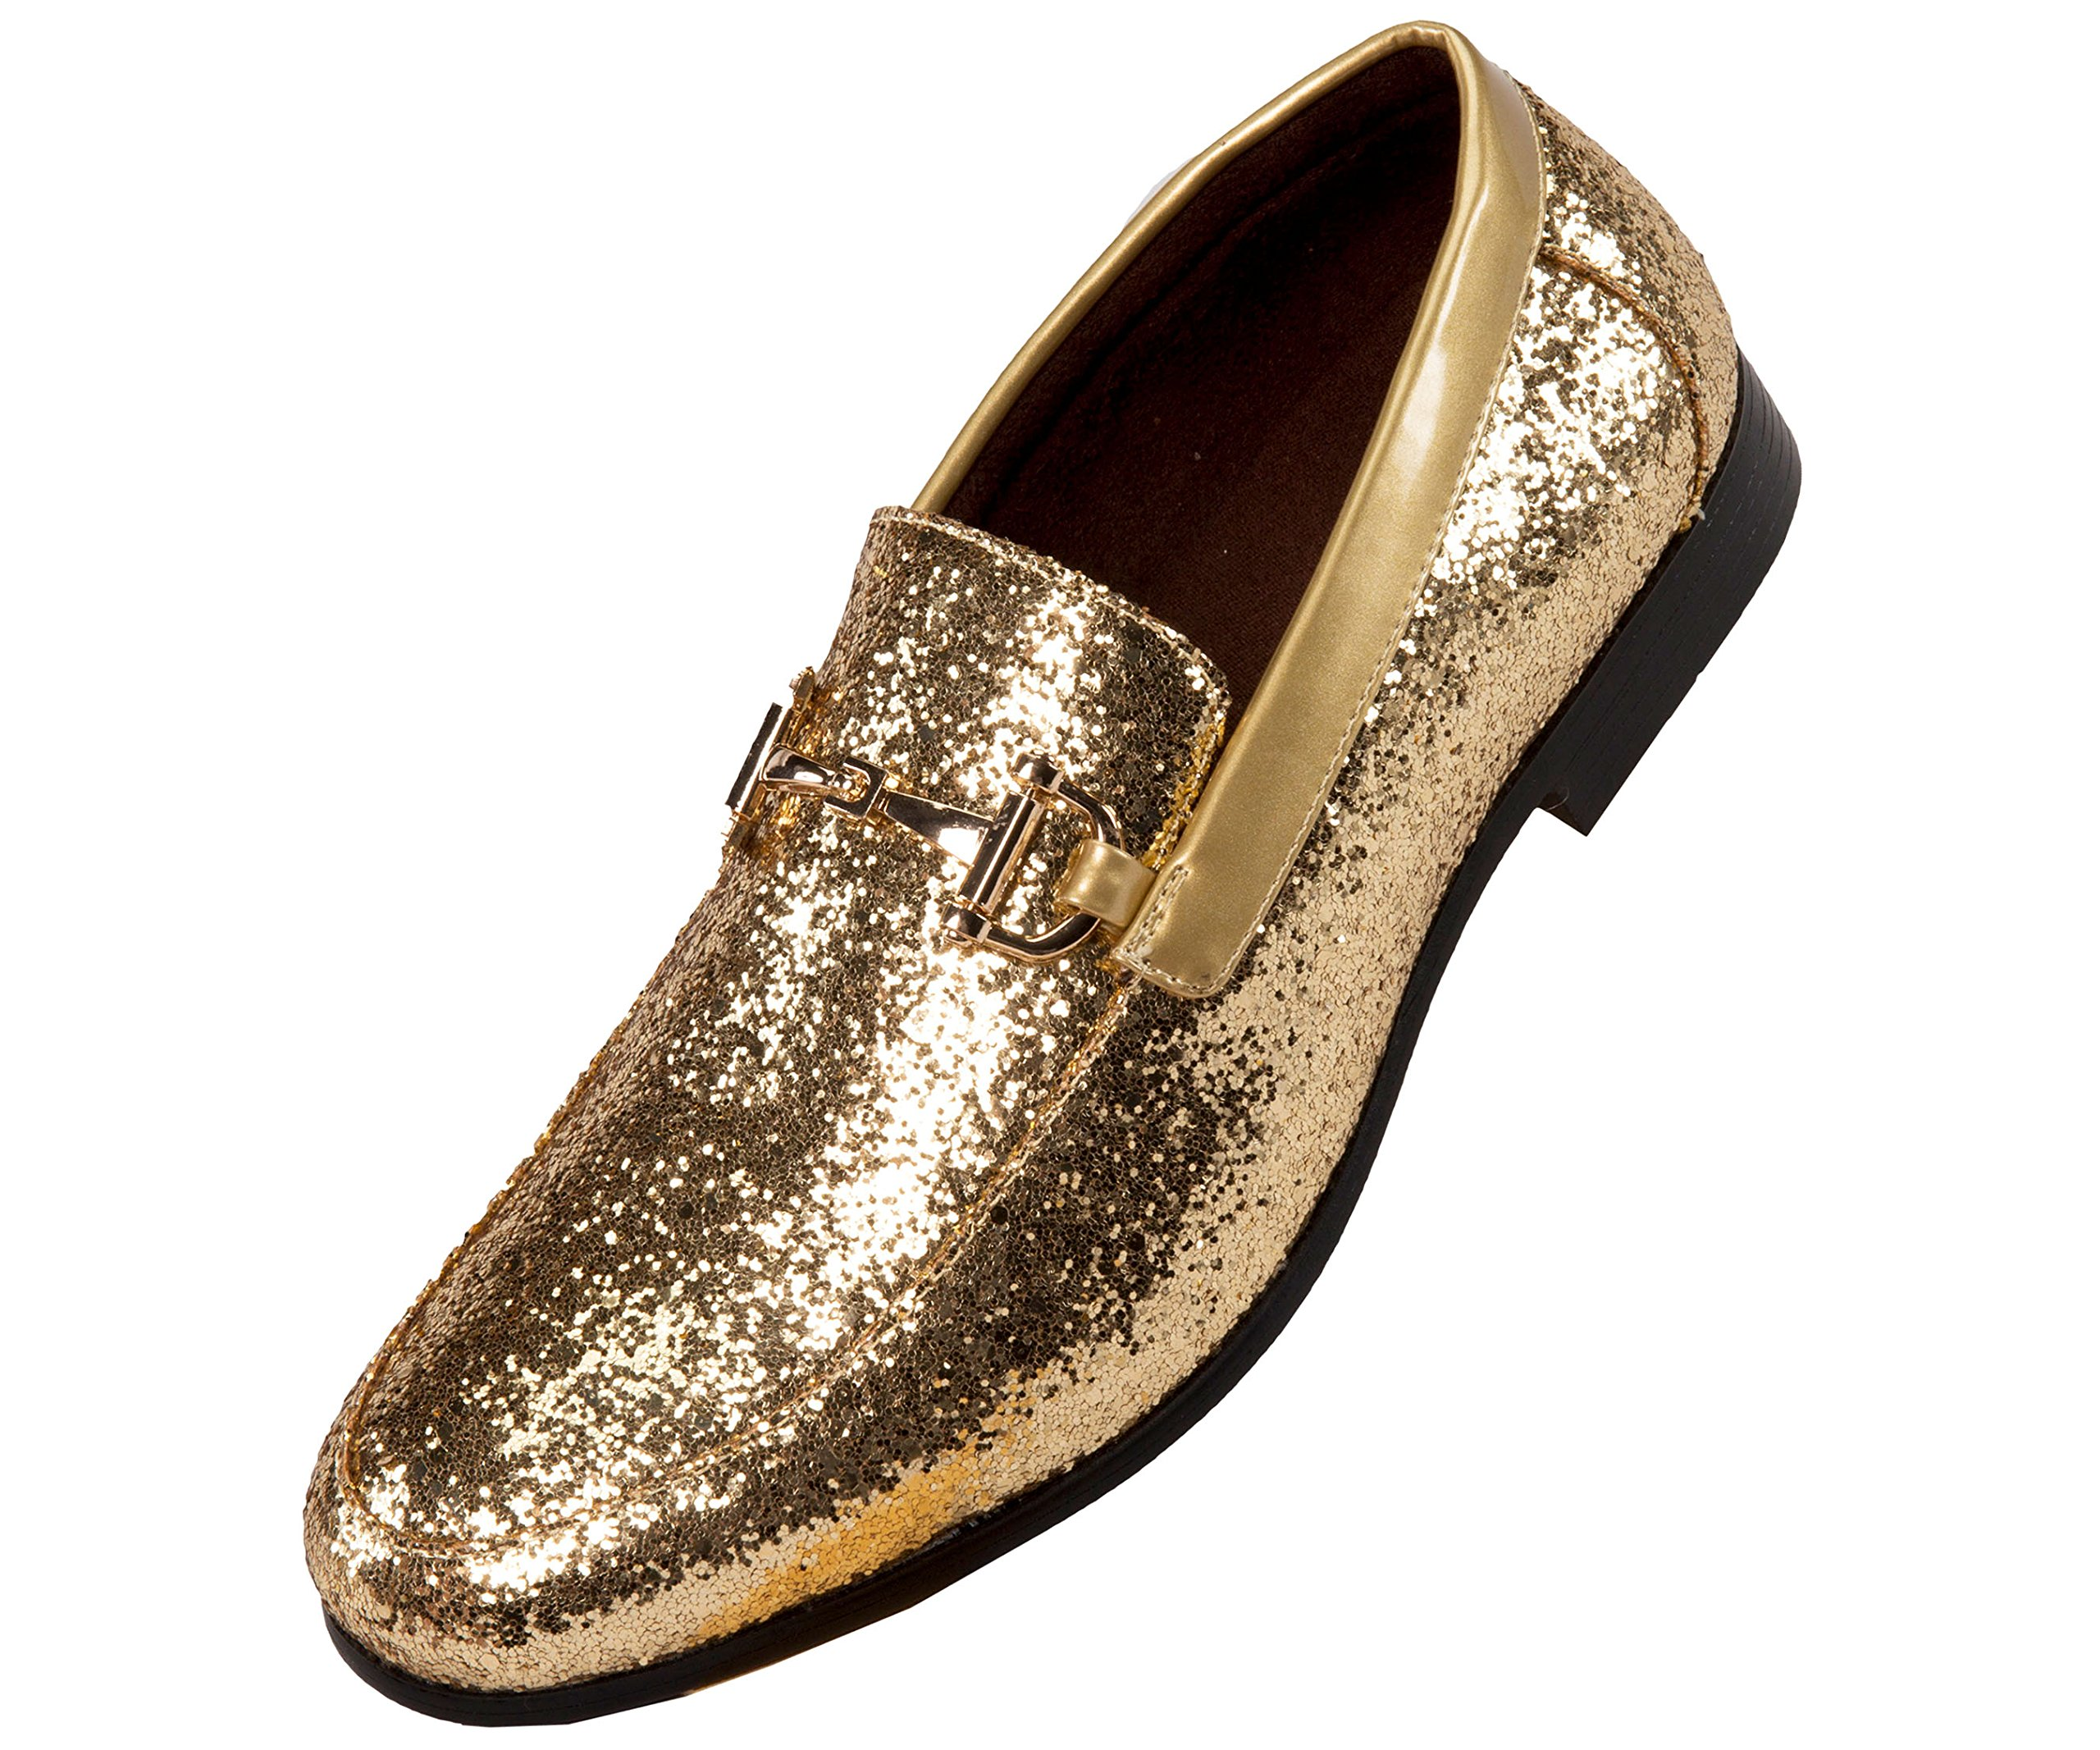 Amali Mens Metallic Sparkling Glitter Tuxedo Slip on Smoking Slipper Dress Shoe